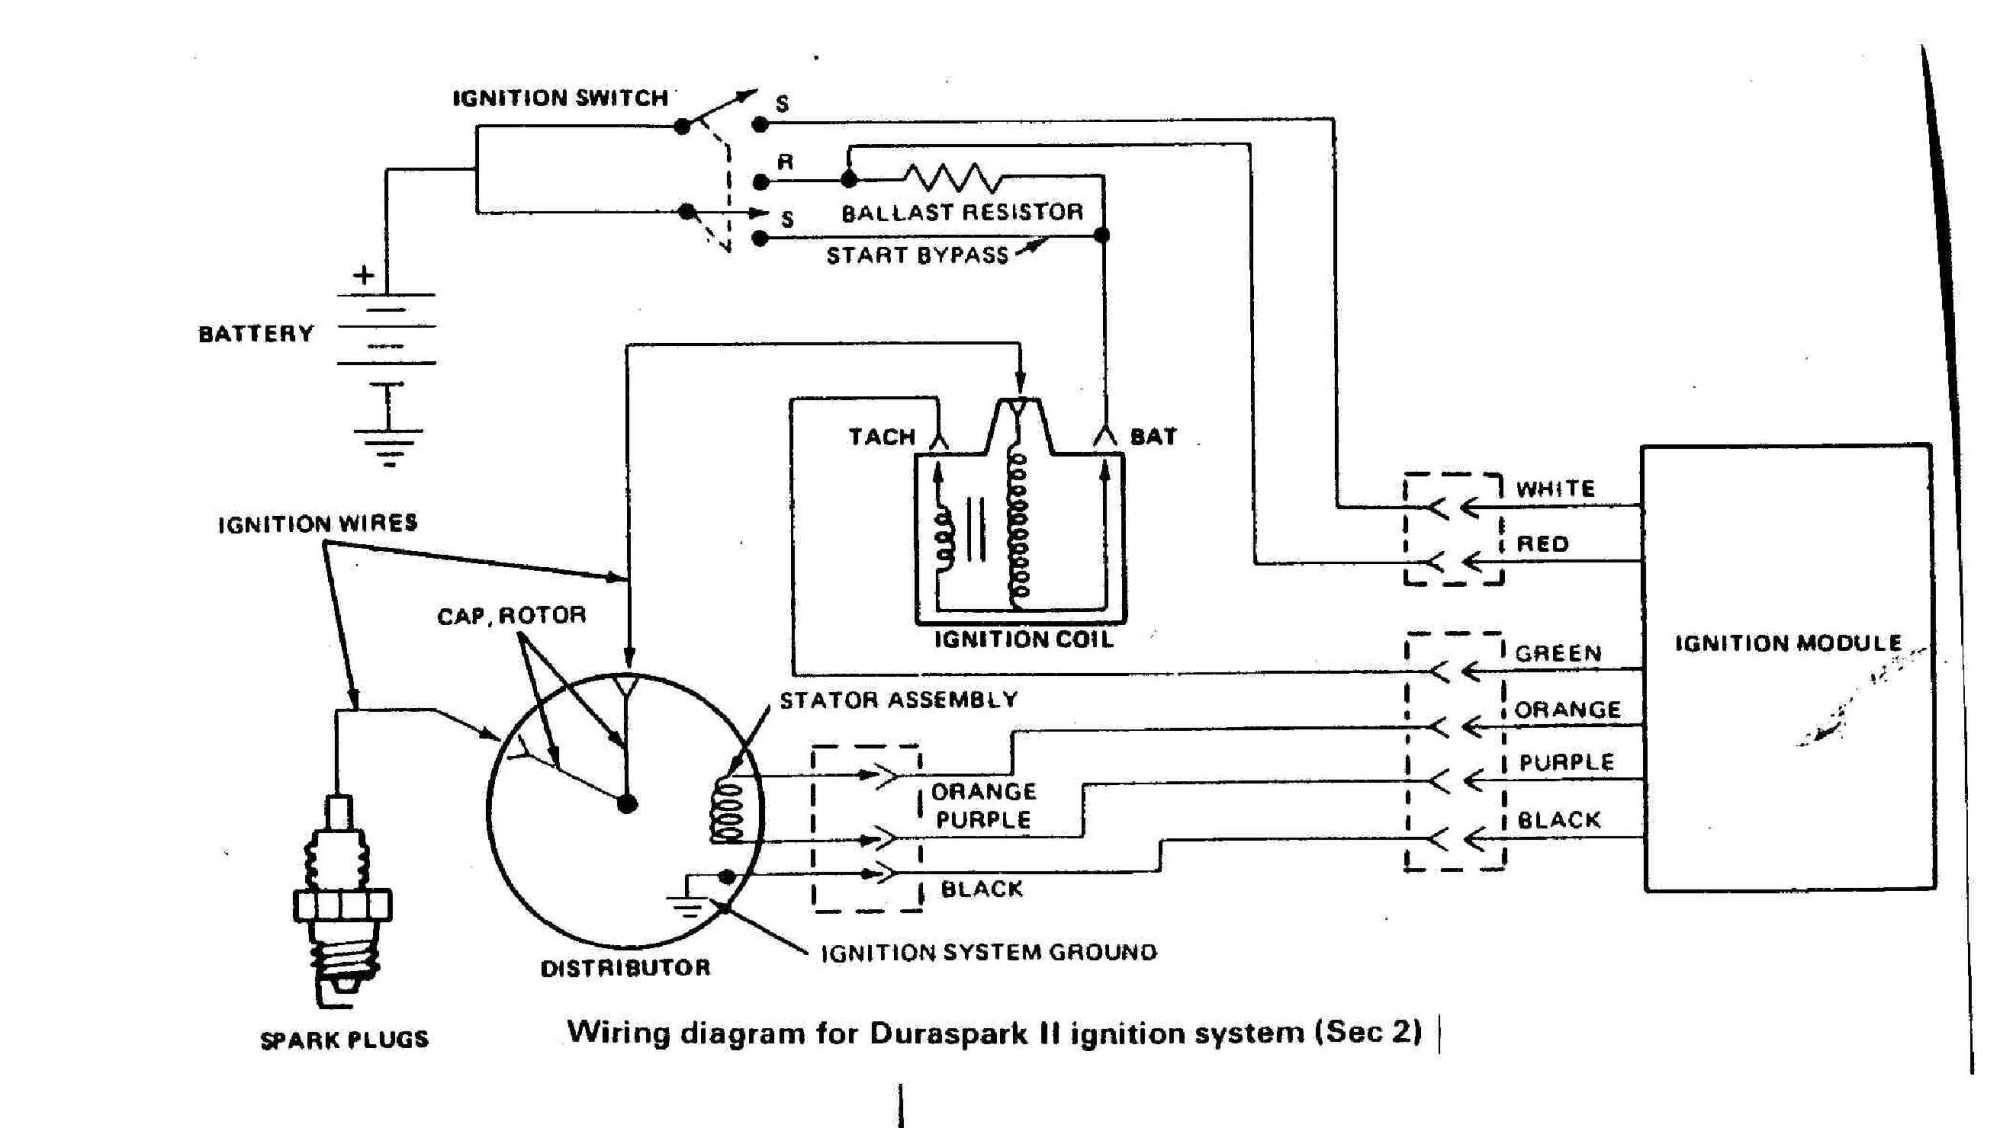 hight resolution of 1974 ford 302 wiring harness diagram wiring diagram third level 2002 ford mustang wiring diagram 1974